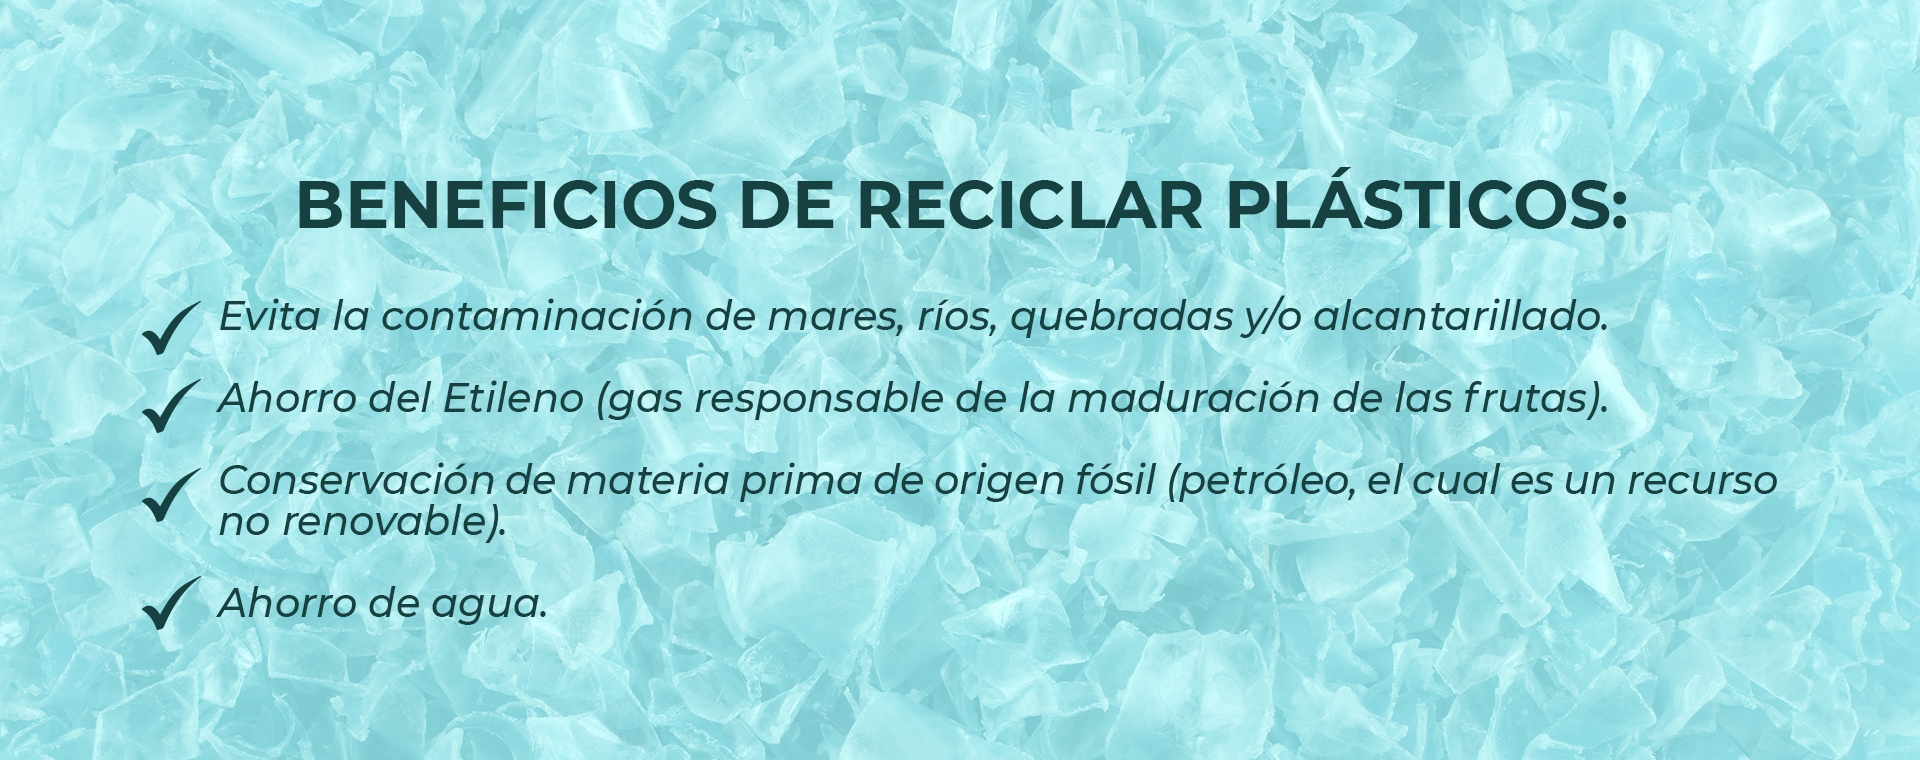 BENEFICIOS PLASTICOS 2